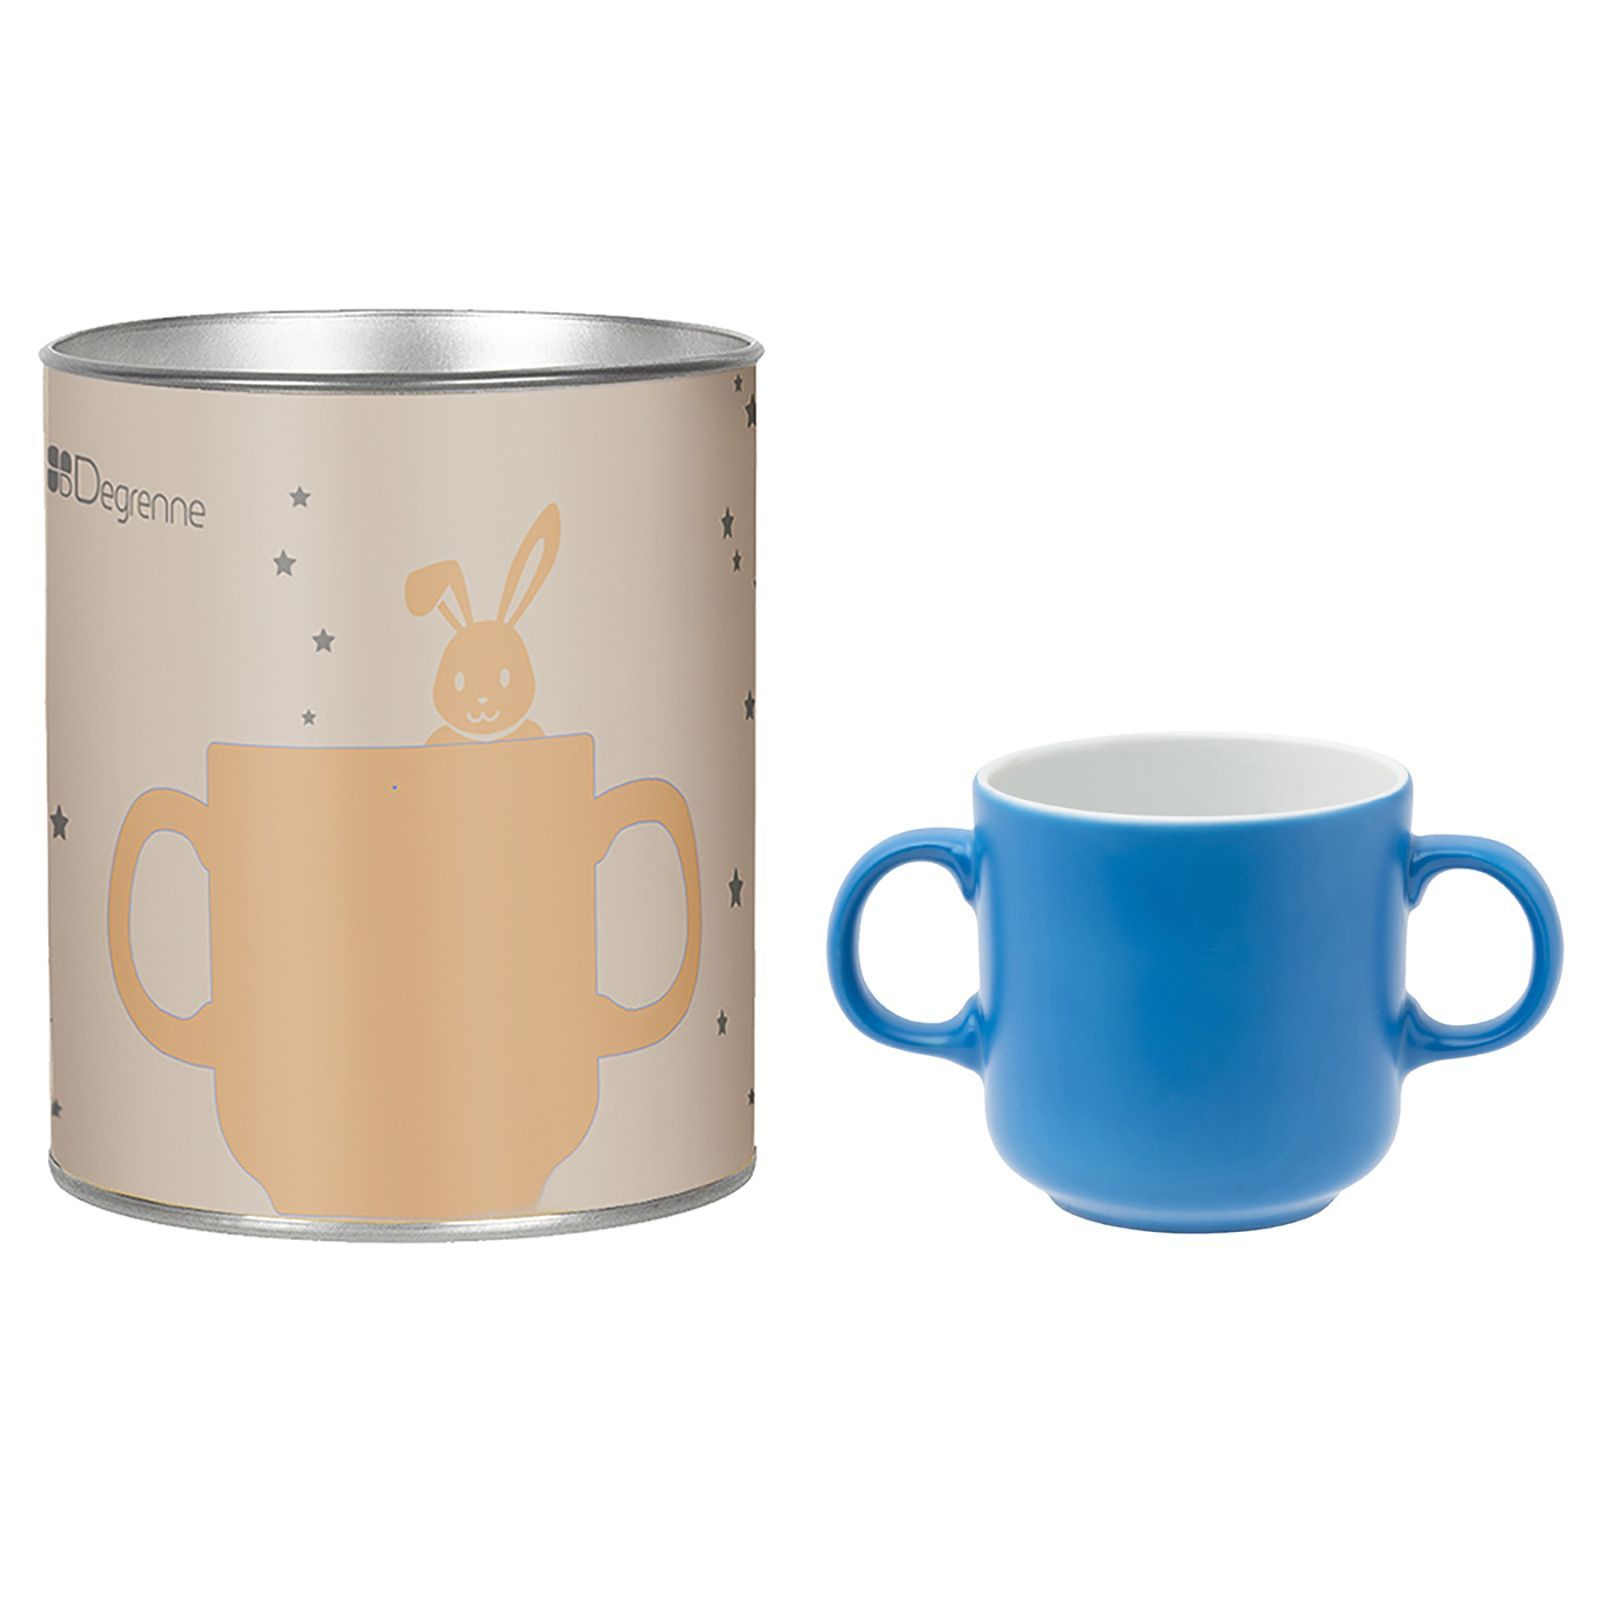 guy degrenne octave et sidonie bleu coffret tube mug 2 anses illusions bleu brandalley. Black Bedroom Furniture Sets. Home Design Ideas